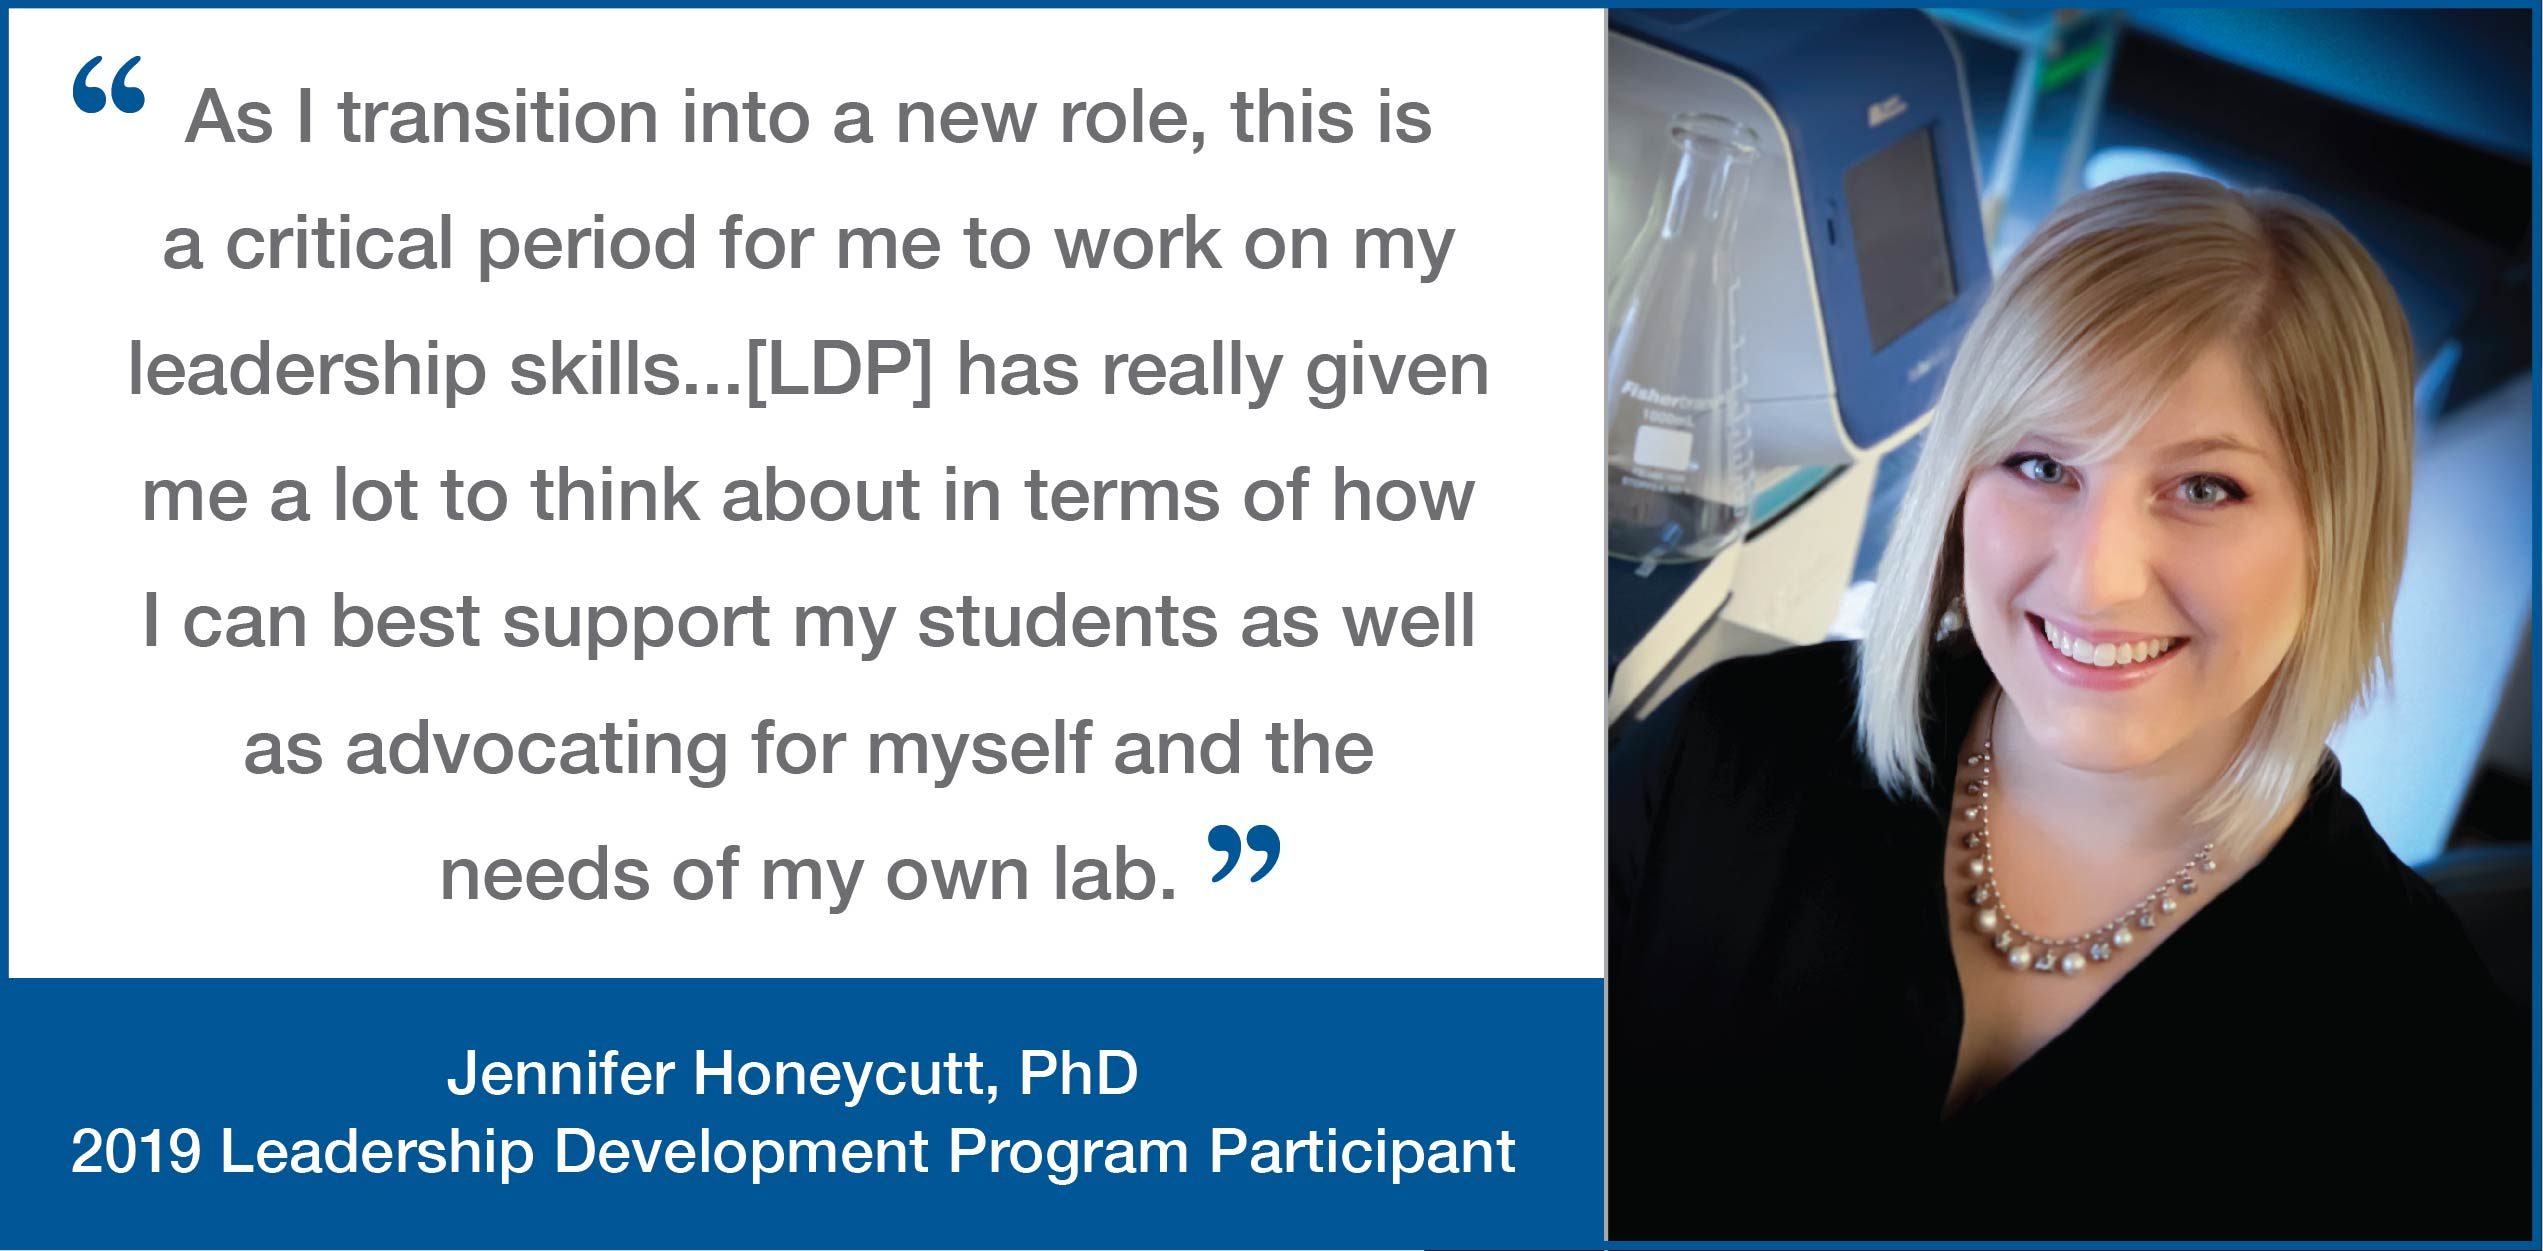 """Leadership Development Program testimonial graphic from Jennifer Honeycutt, PhD; Leadership Development Program Participant. Image of Jennifer Honeycutt. """"As I transition into a new role, this is a critical period for me to work on my leadership skills...[LDP] has really given me a lot to think about in terms of how I can best support my students as well as advocating for myself and the needs of my own lab."""""""